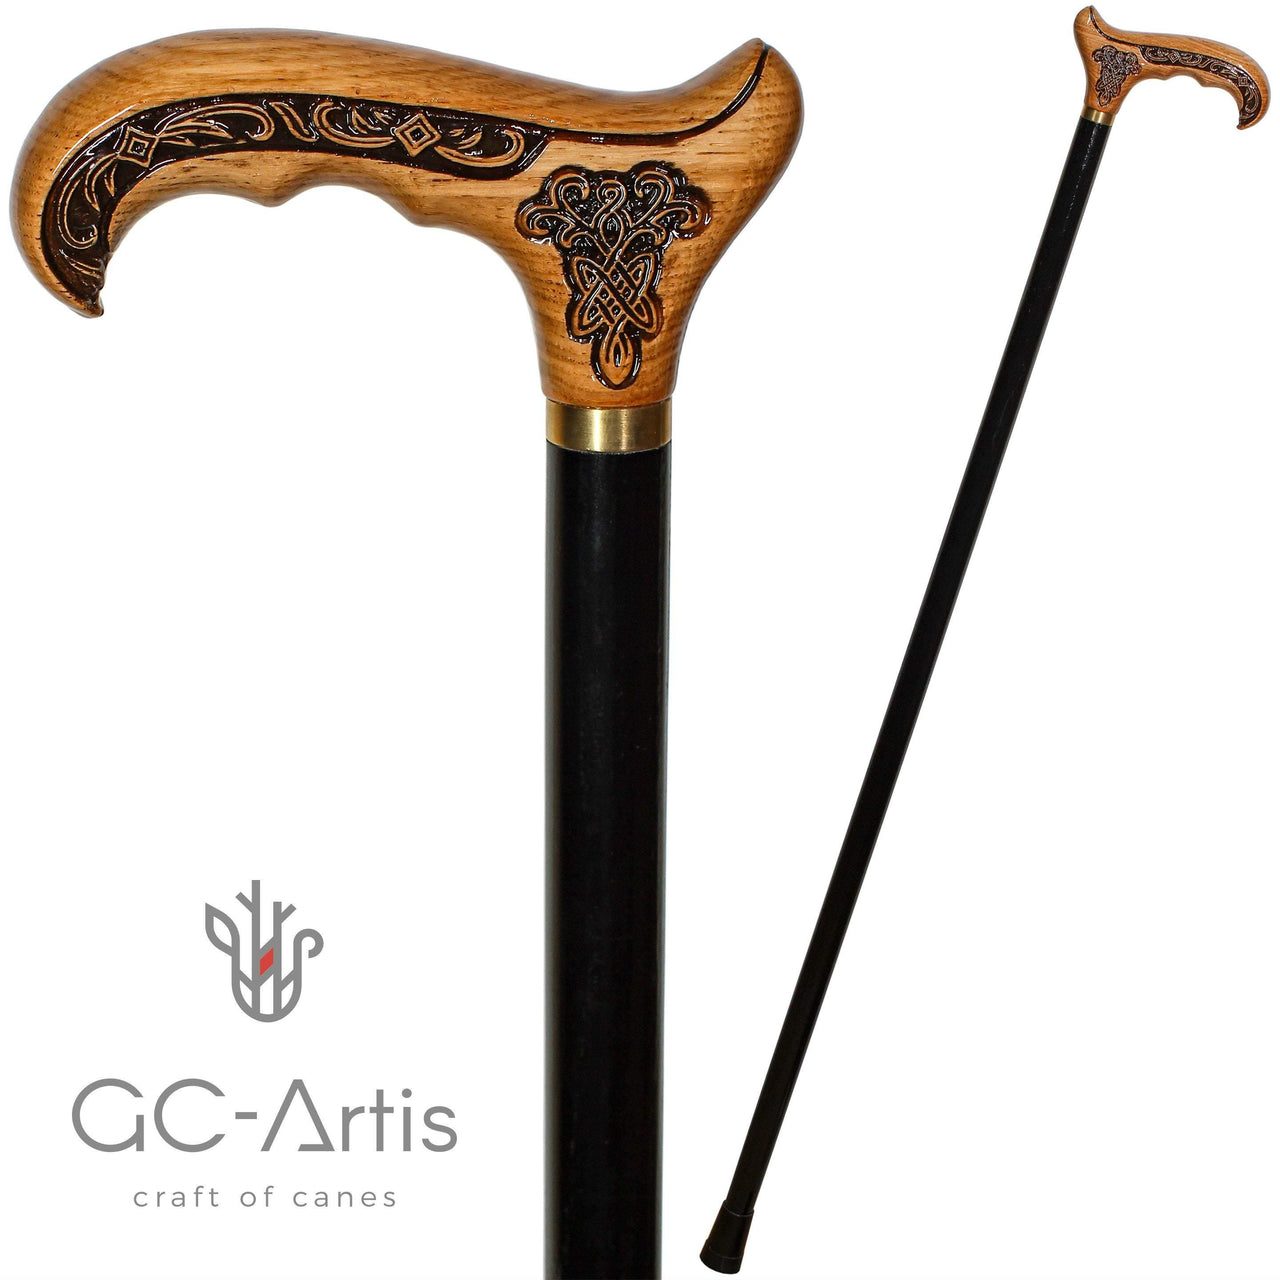 Wooden Cane Walking Stick with Celtic Ornement - GC-Artis Walking Sticks Canes